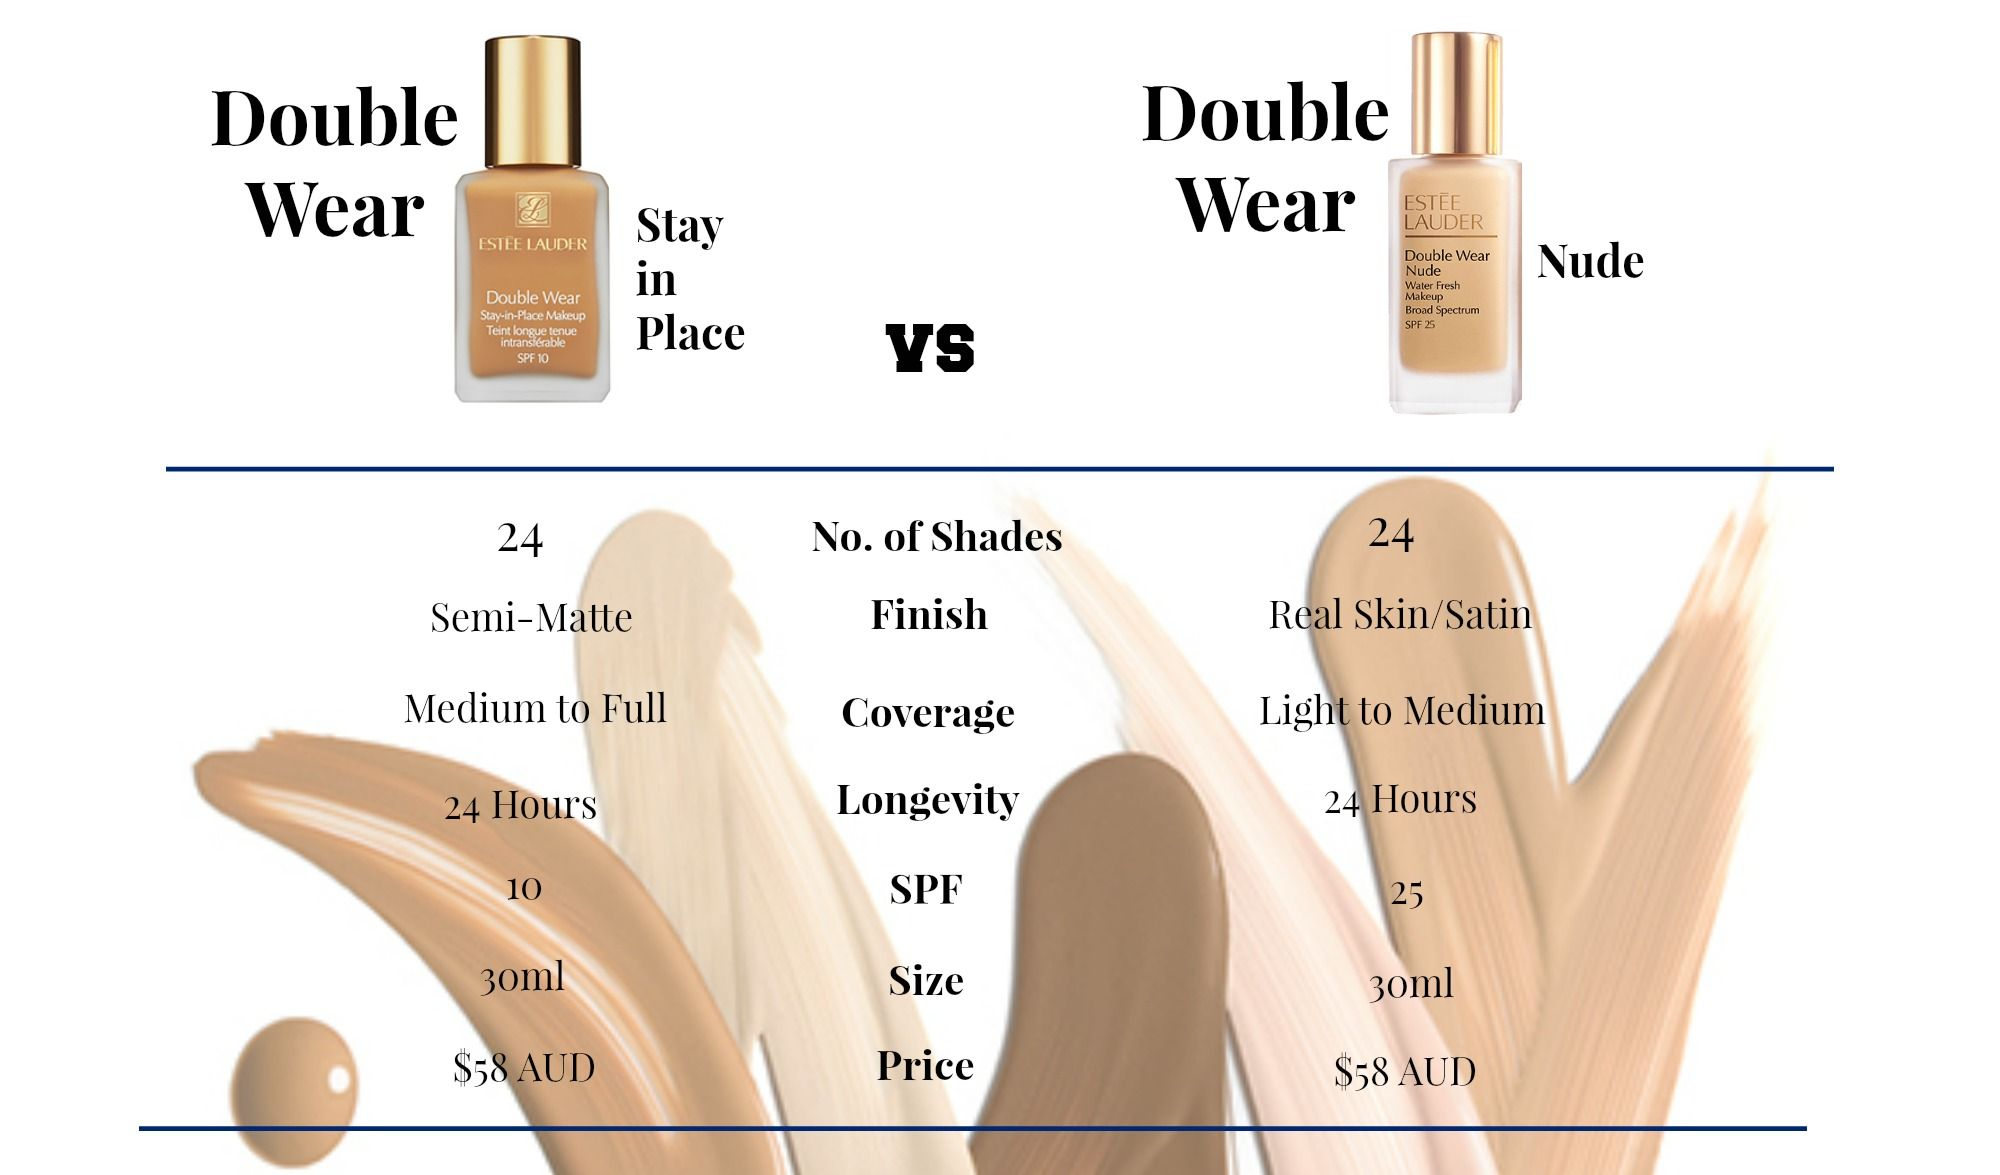 Estée Lauder Double Wear Stay in Place vs Double Wear Nude Water Fresh